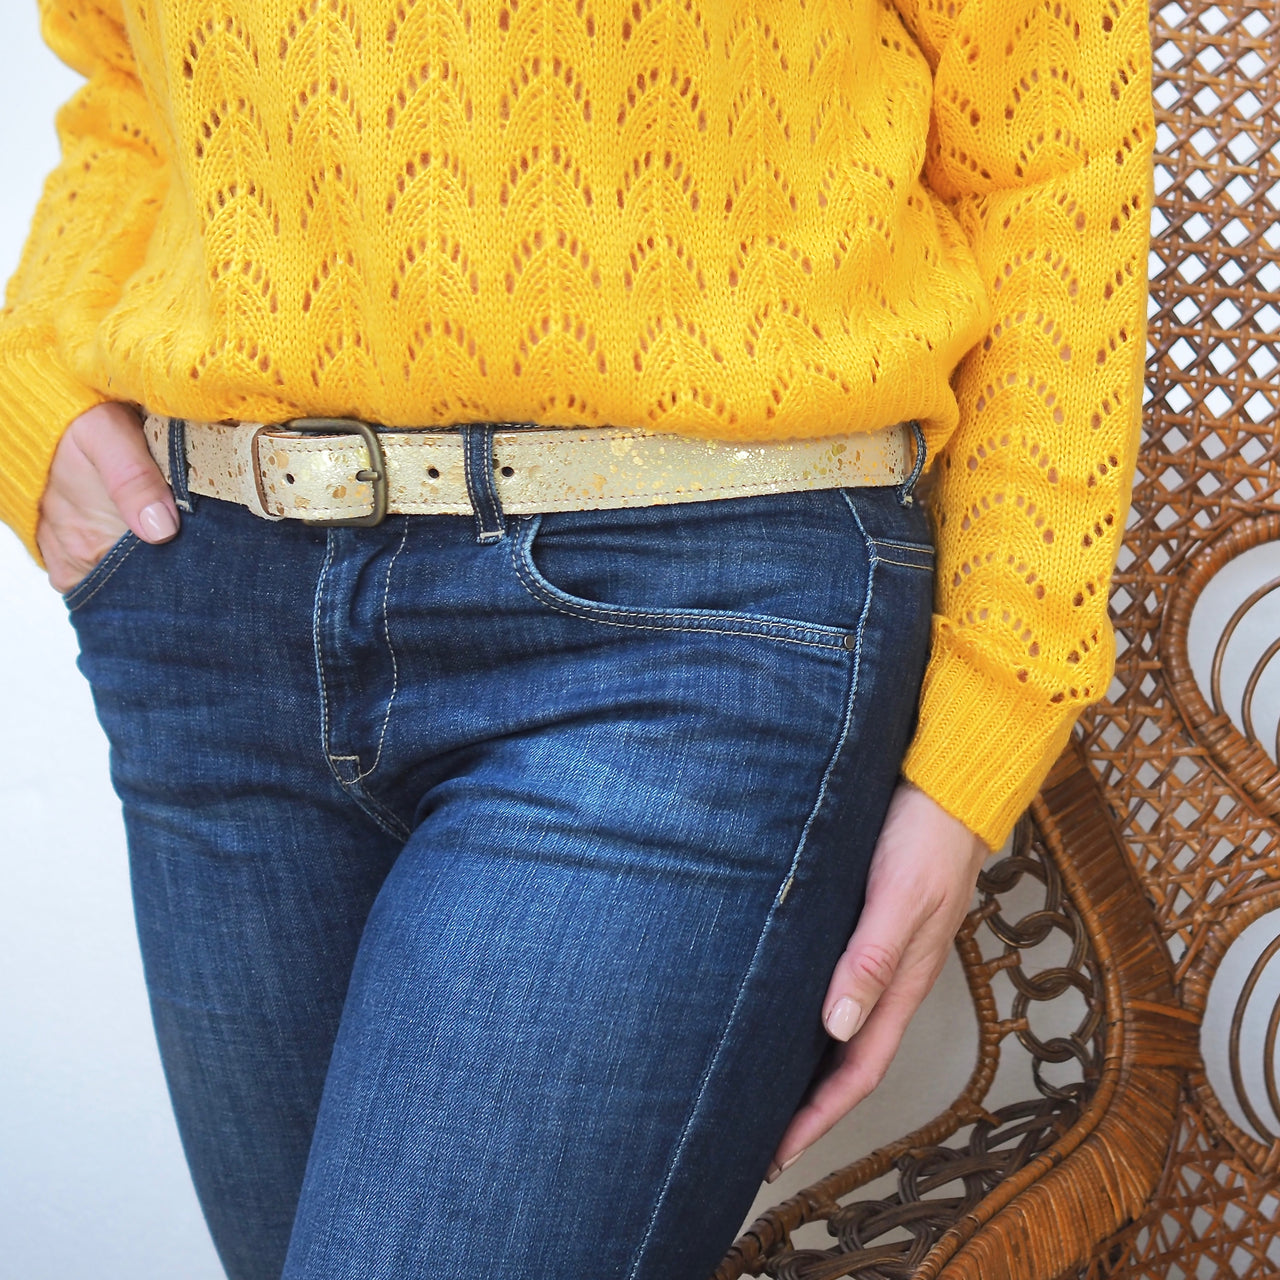 Cowhide Belts - Gold Splash | Gift Pop Boutique